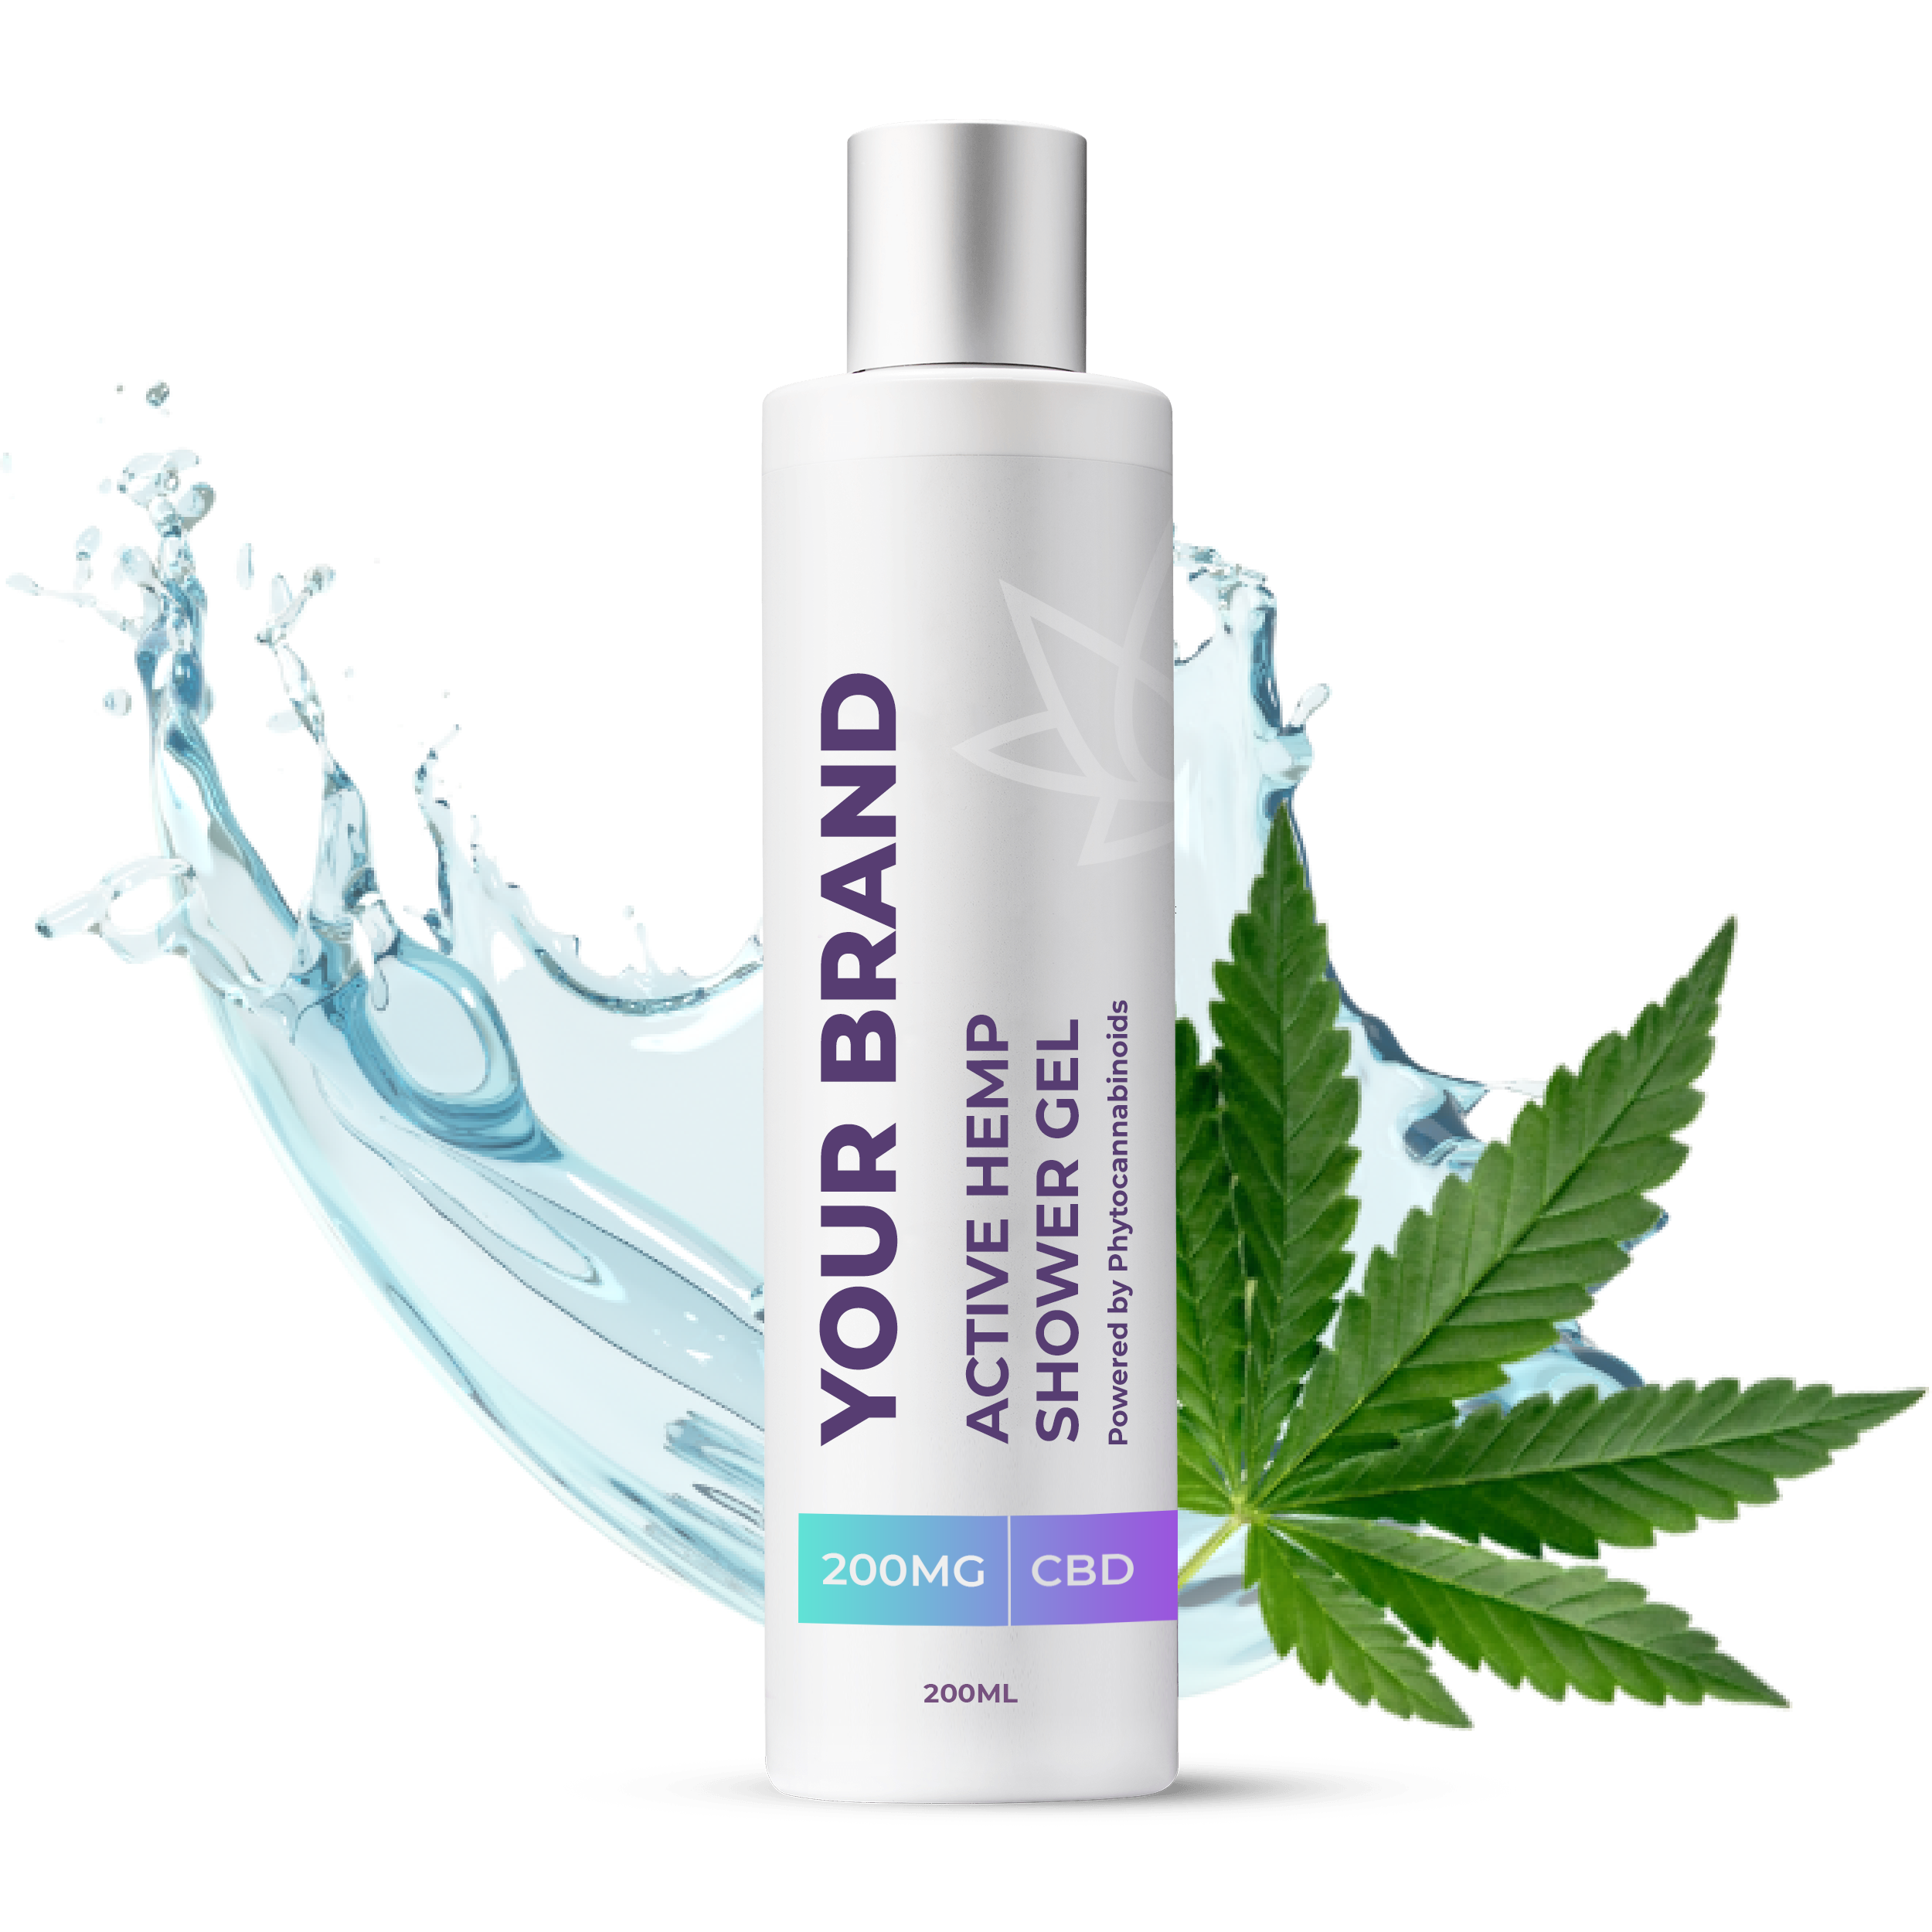 White & Private label Active Hemp CBD Shower Gel supplied in a 200ml Fully recyclable medical grade PET bottle